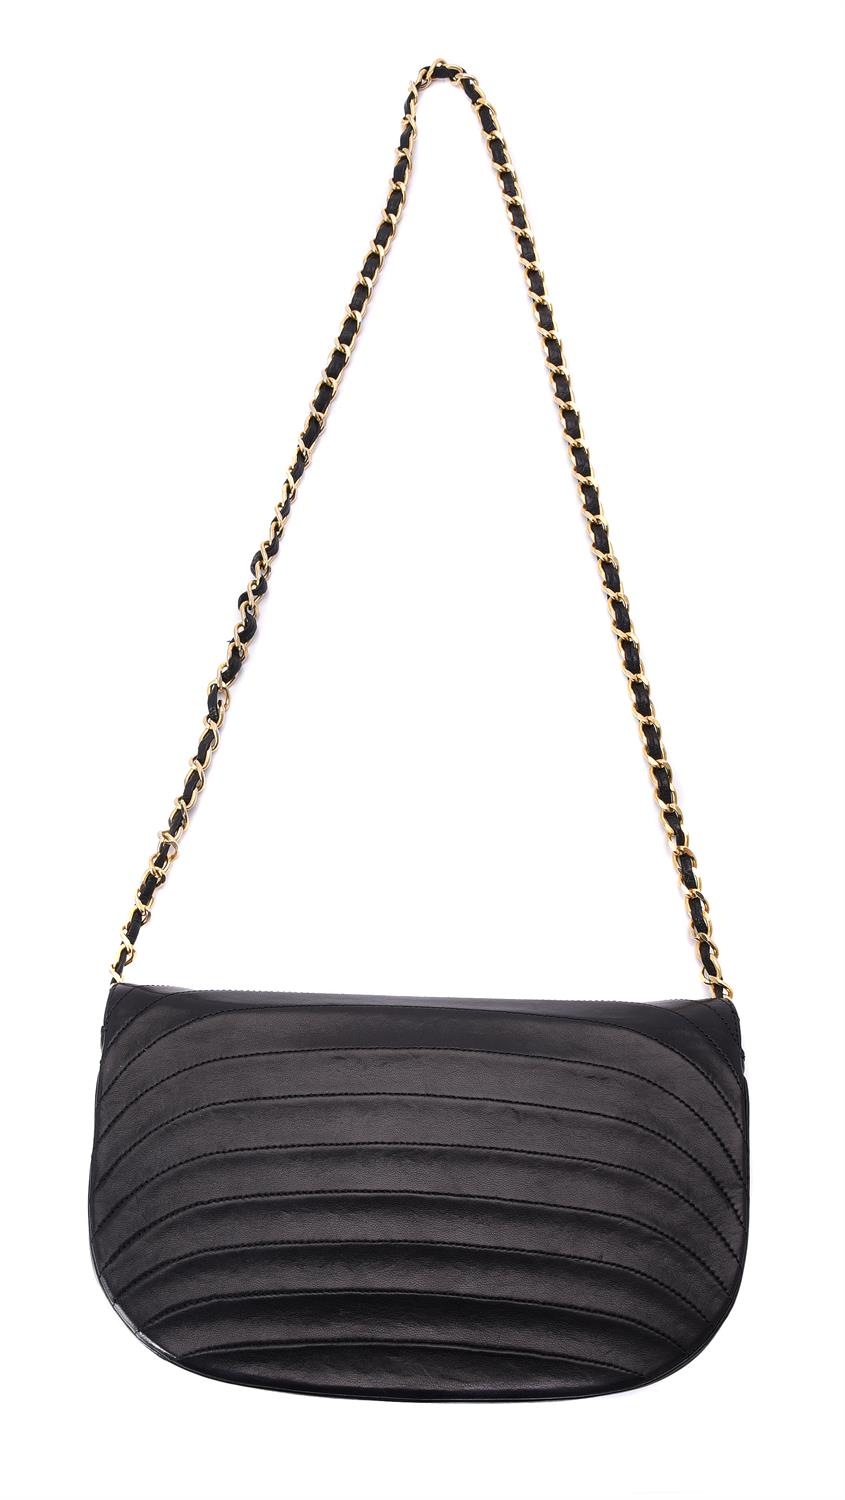 Chanel, a vintage black leather flap bag - Image 2 of 3